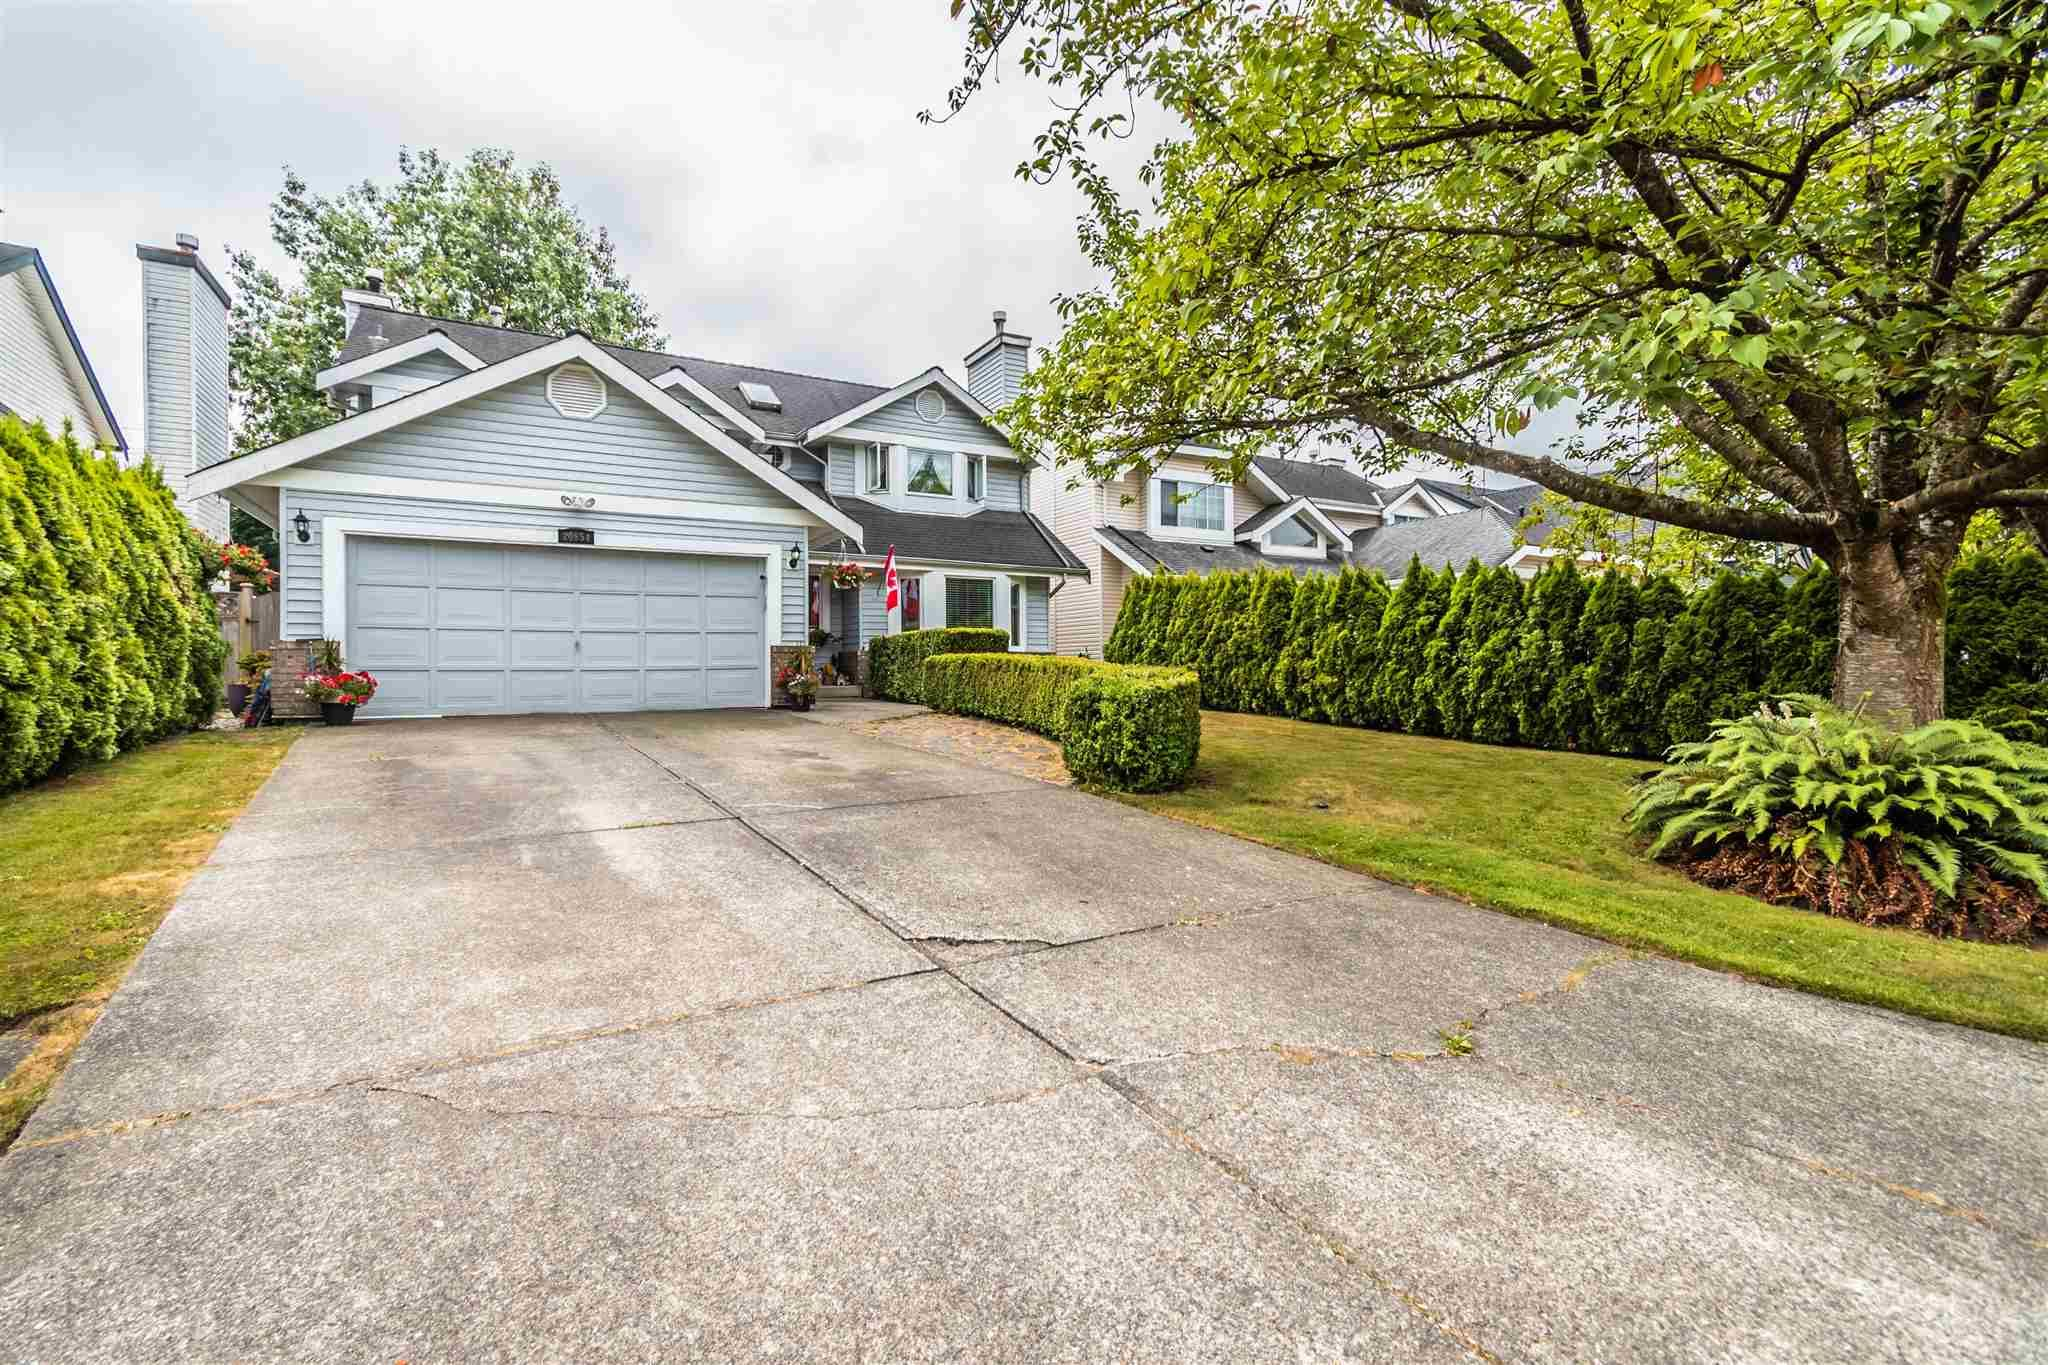 """Main Photo: 20854 95A Avenue in Langley: Walnut Grove House for sale in """"Walnut Grove"""" : MLS®# R2600712"""